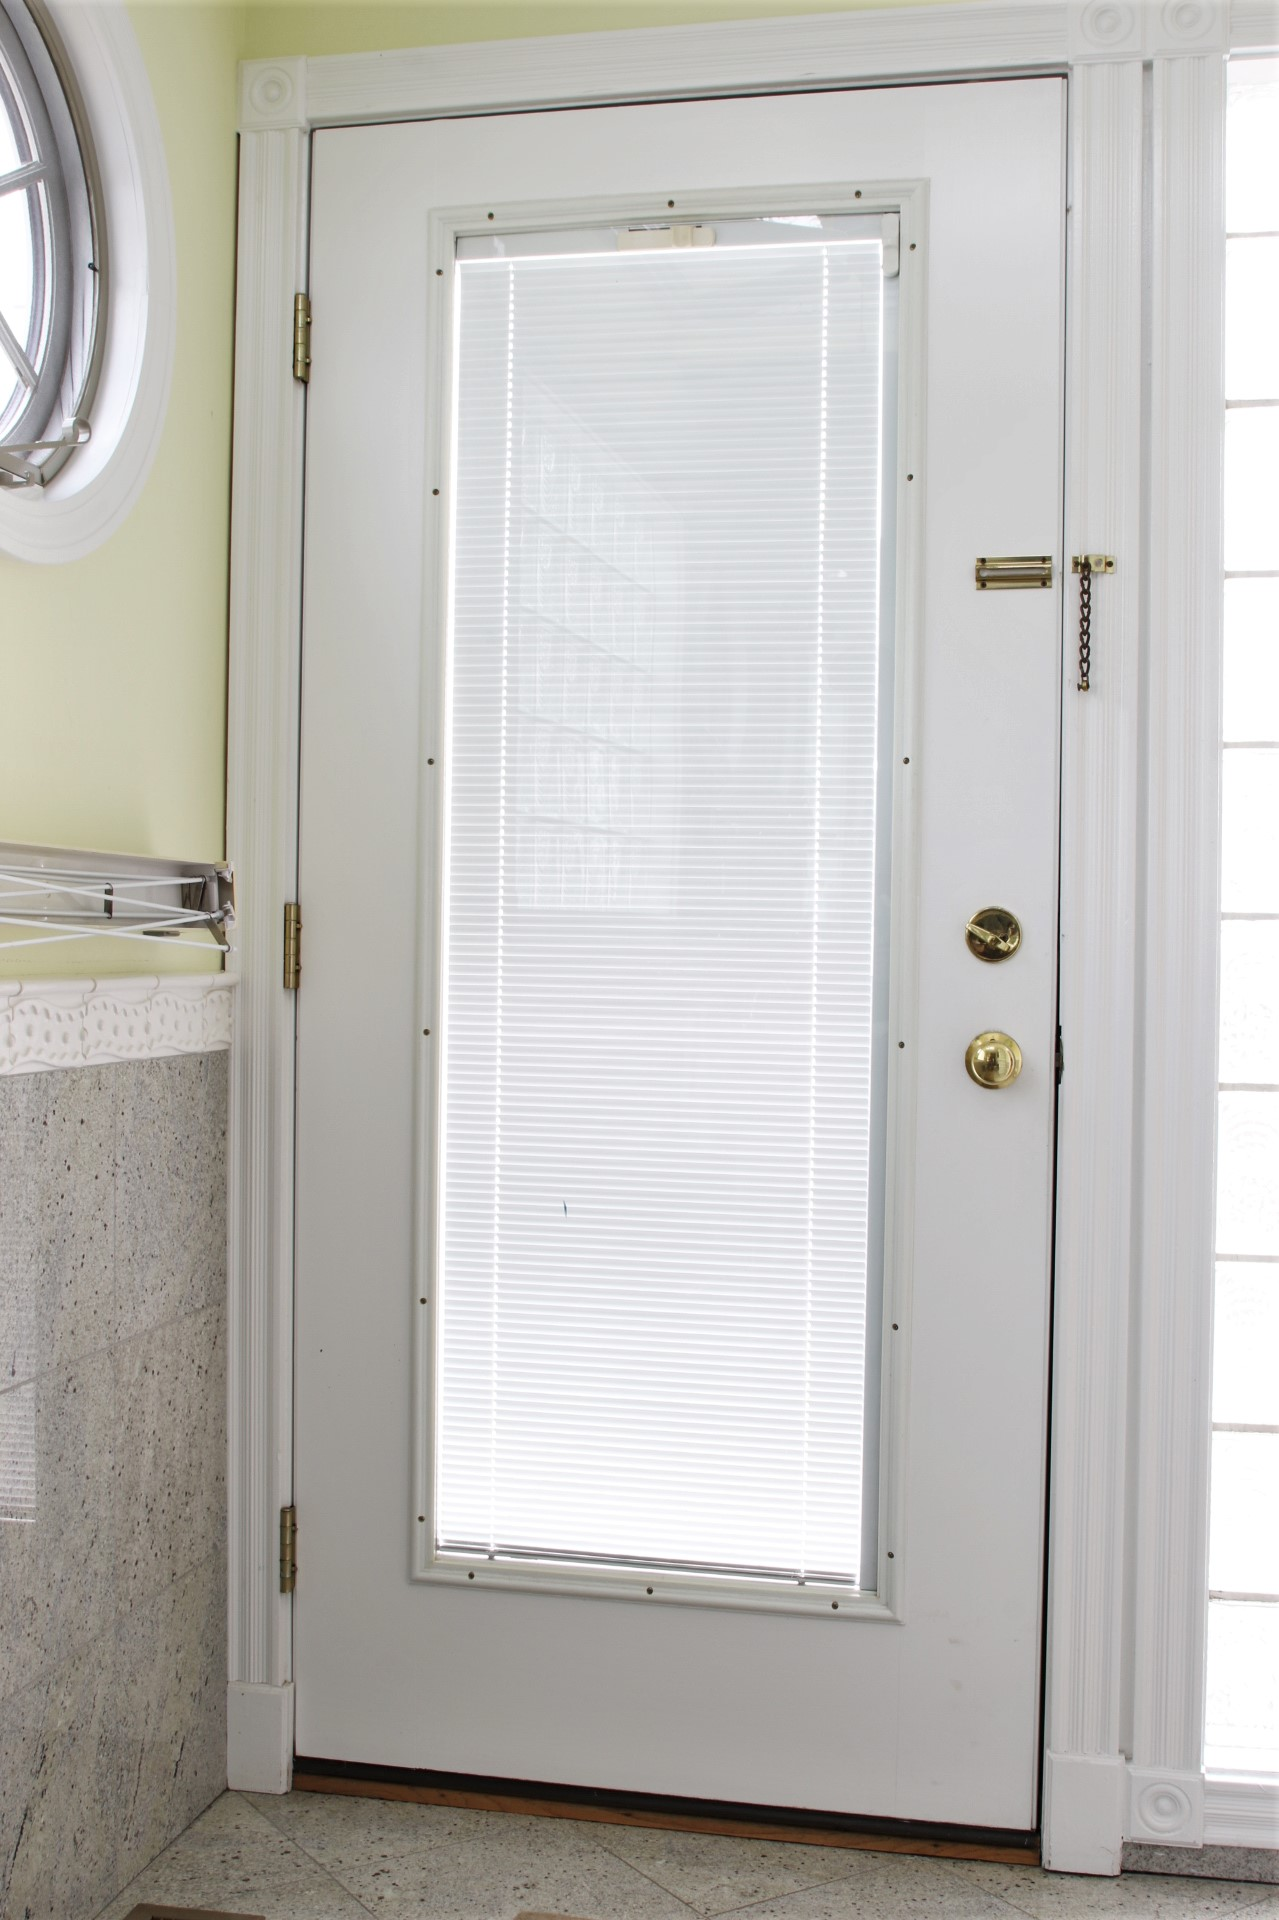 Exterior: High Quality Steel Clad Glass Panel Exterior Door And